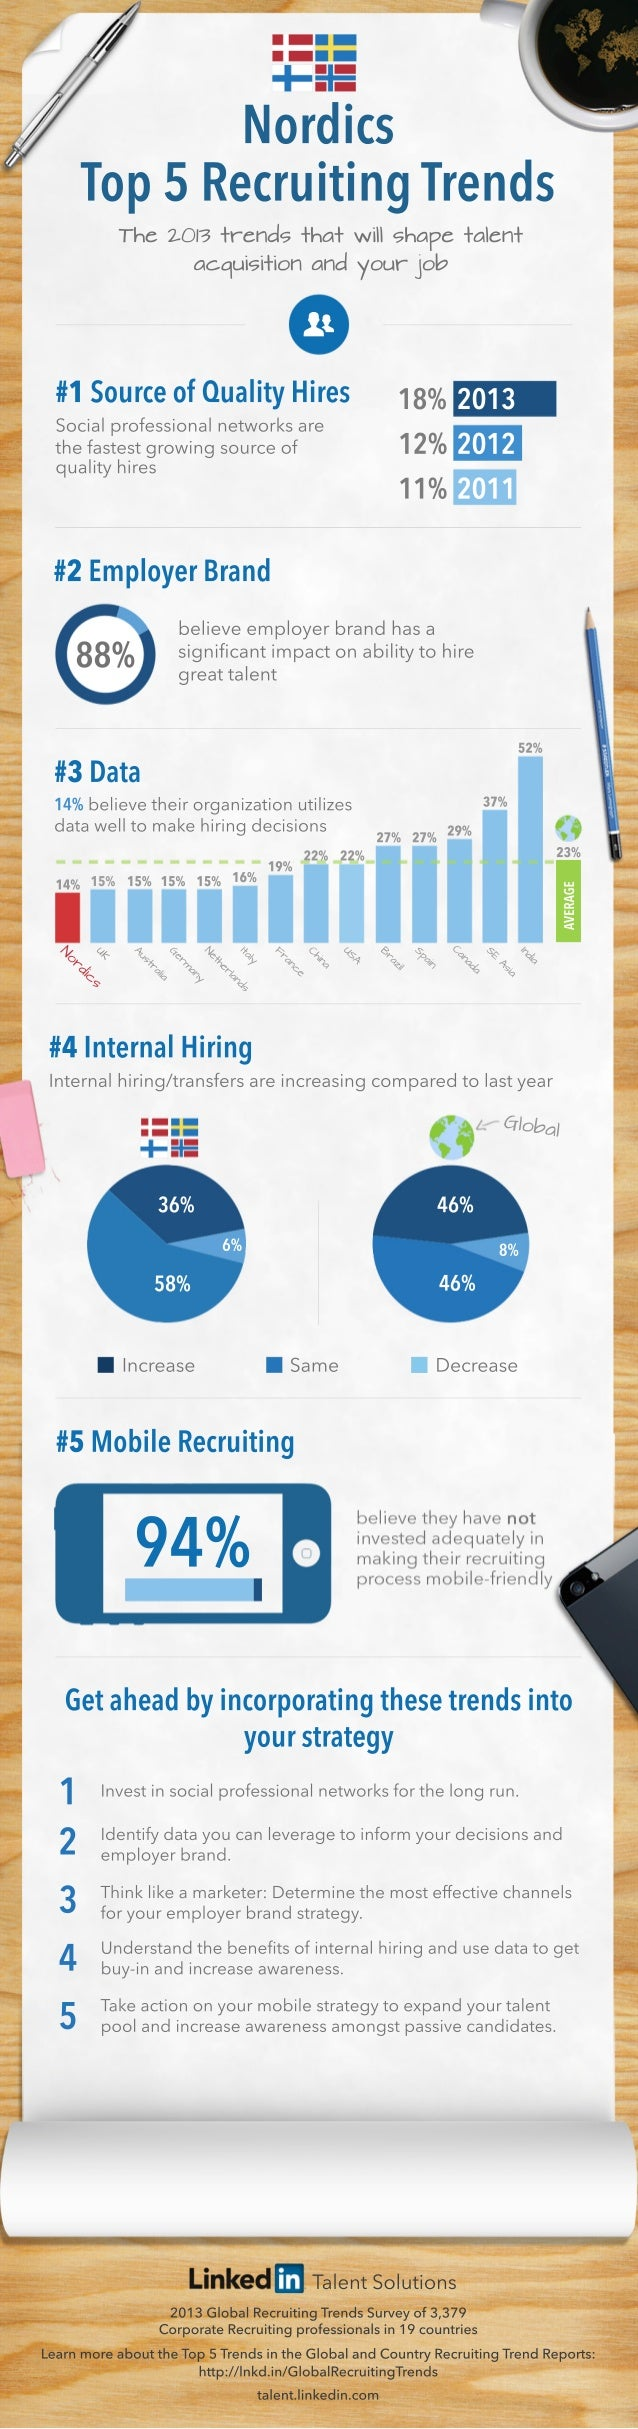 Nordic Recruiting Trends 2013 Infographic | English